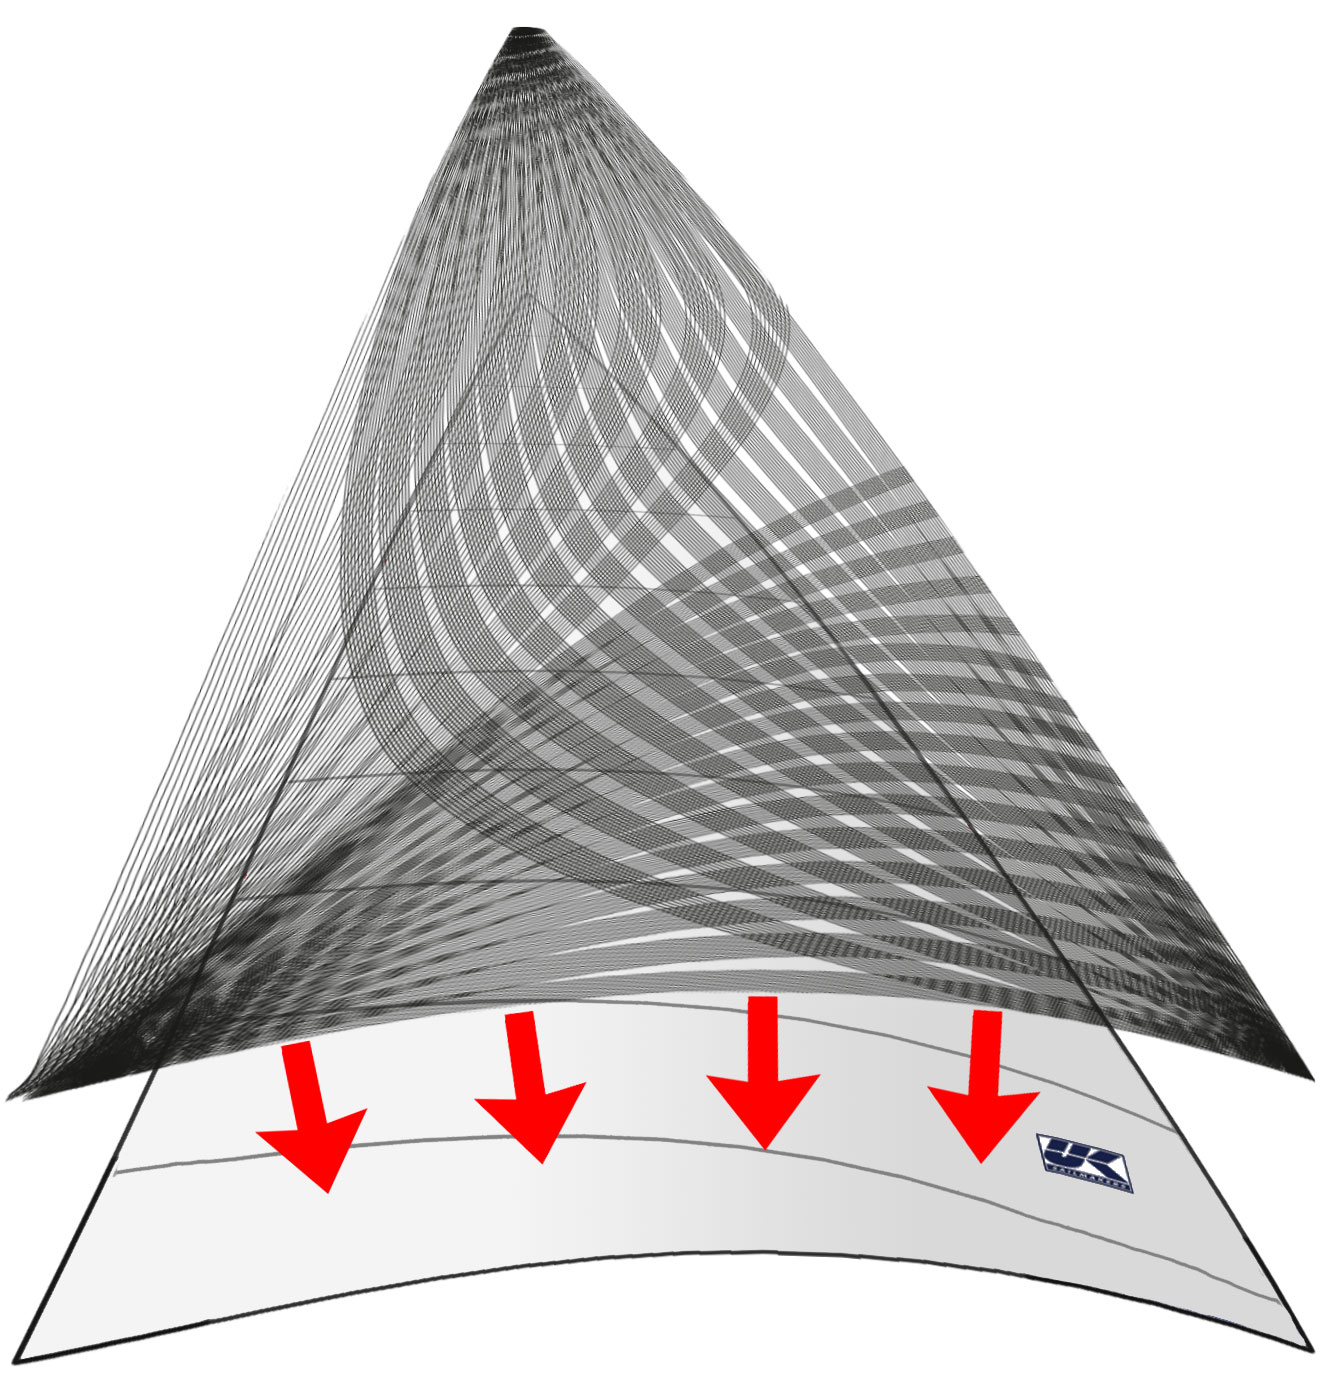 X-Drive is a two-part construction method. As the diagram shows, the sail is made from a light weight material cut into cross cut panels that when put together with broad seaming to achieve the 3-D shape created by the sail designer. Next the sail is reinforced with a grid of narrow high-strength, low-stretch fibers that are bonded to the sail 11 at a time.